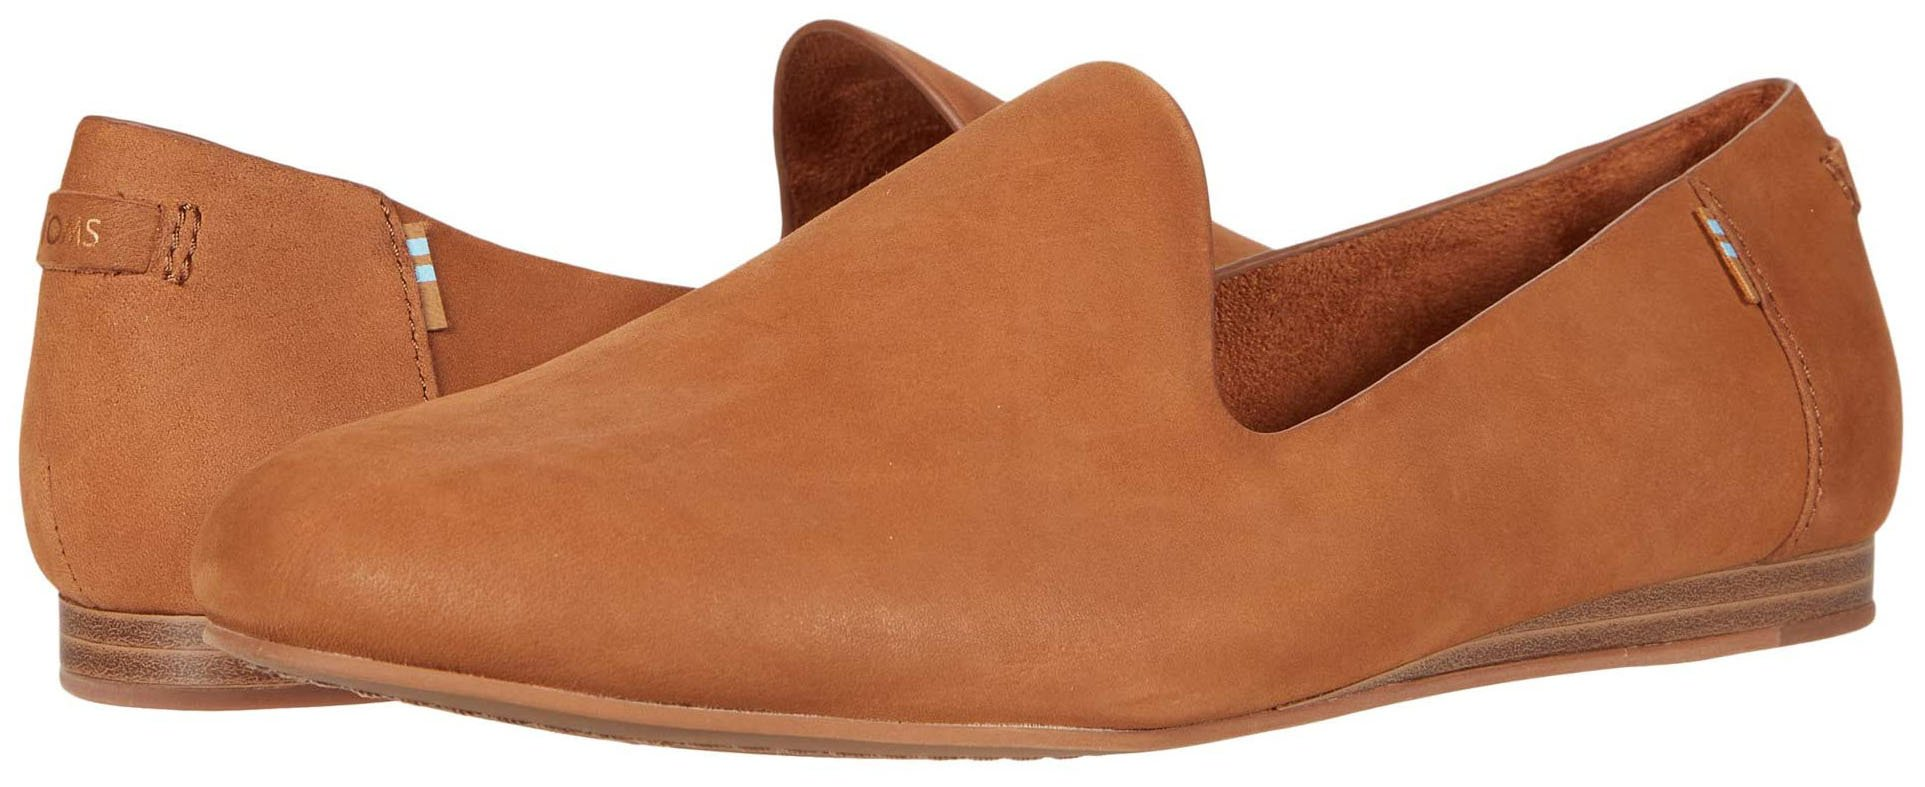 Darcy is a casual yet elevated take on the classic slipper silhouette